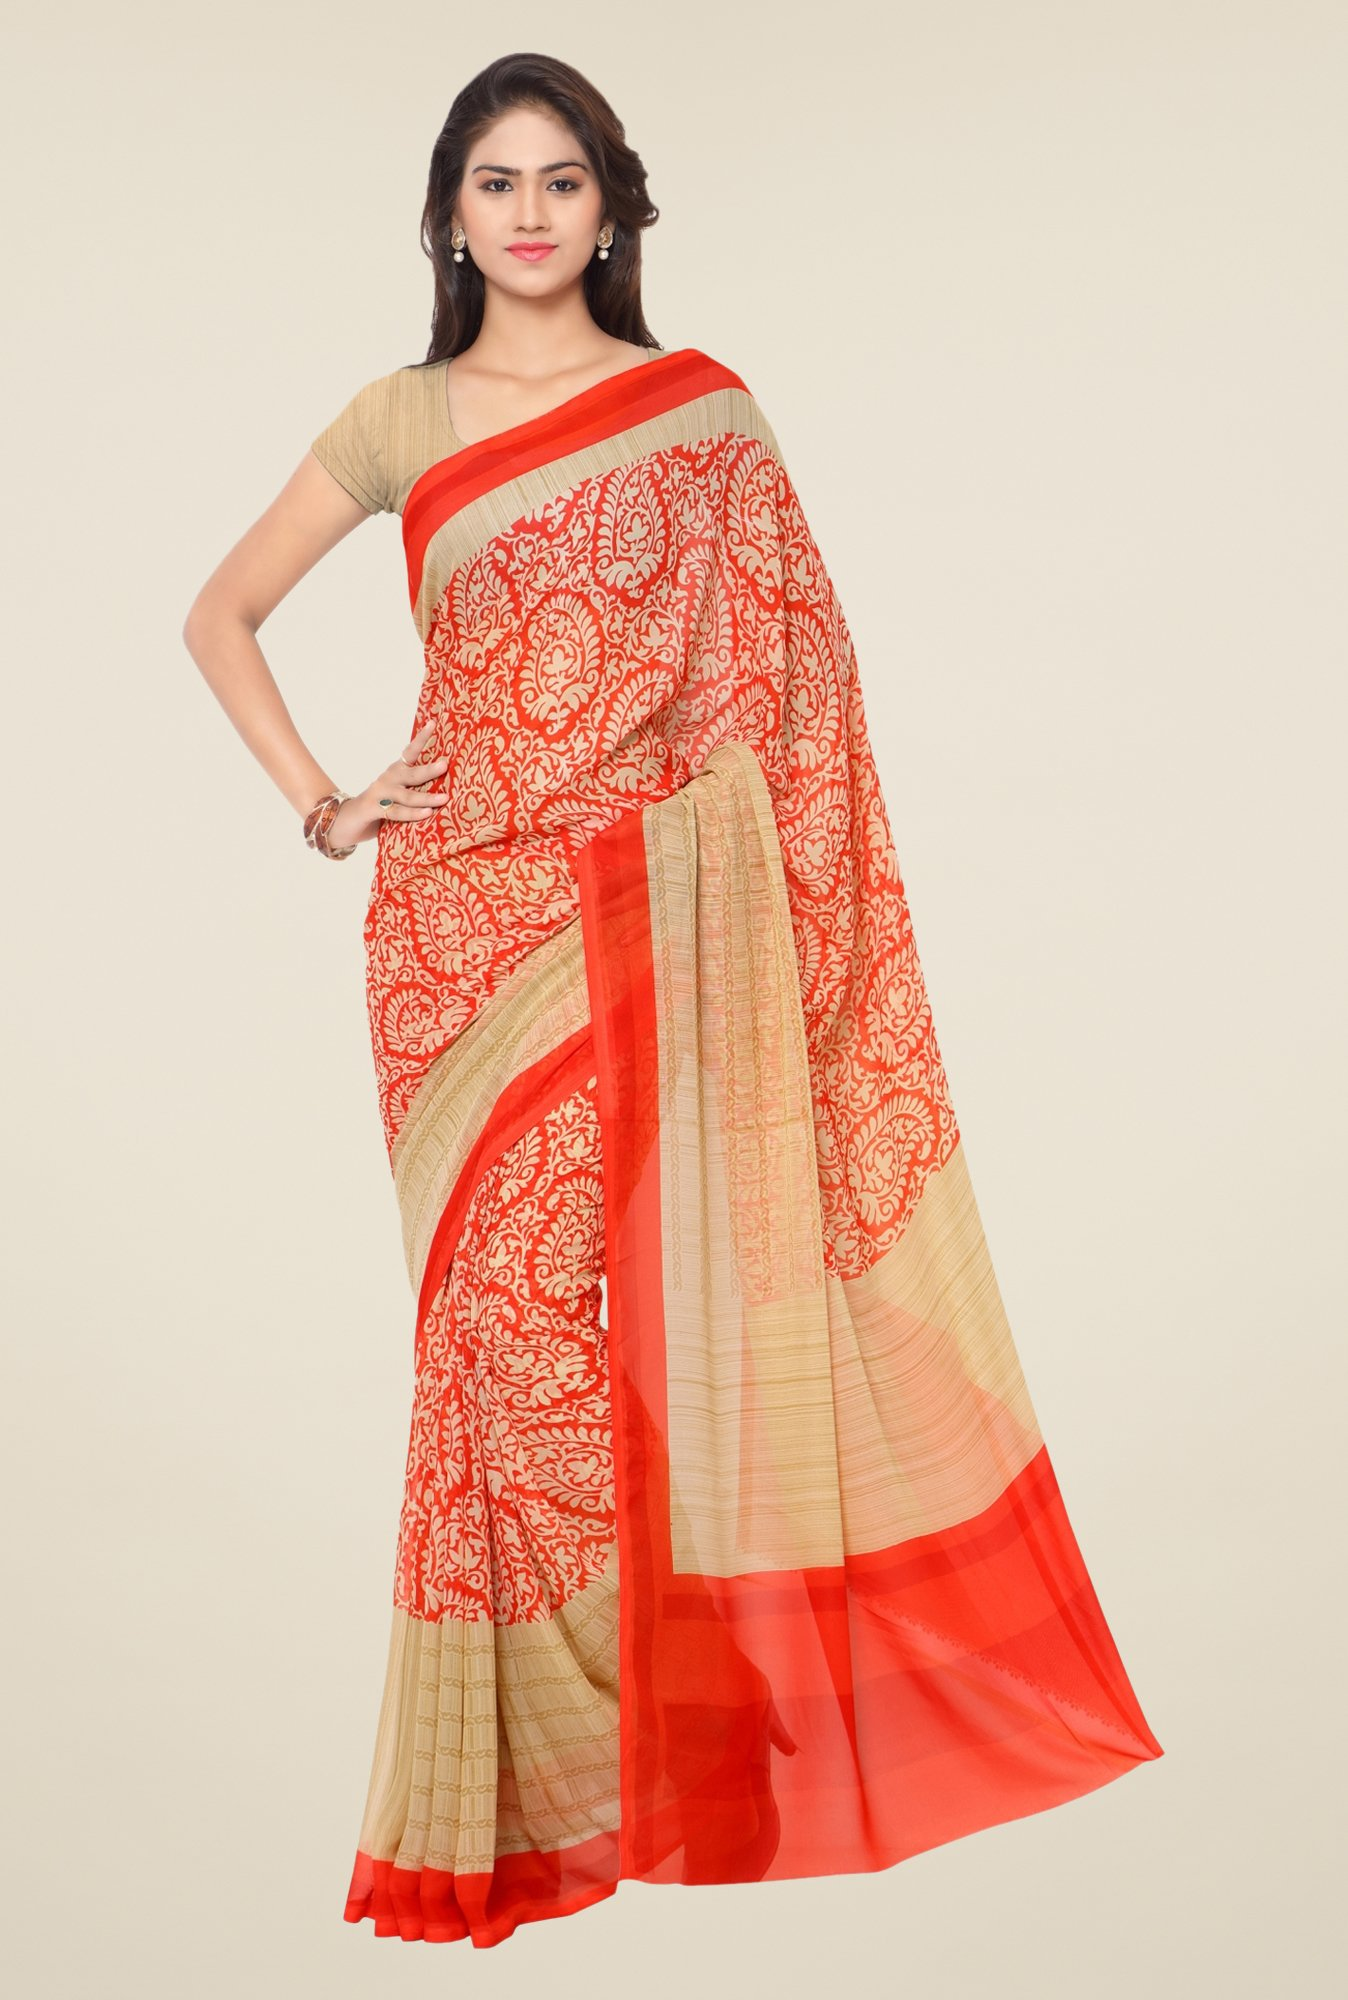 Triveni Red Paisley Print Art Silk Saree